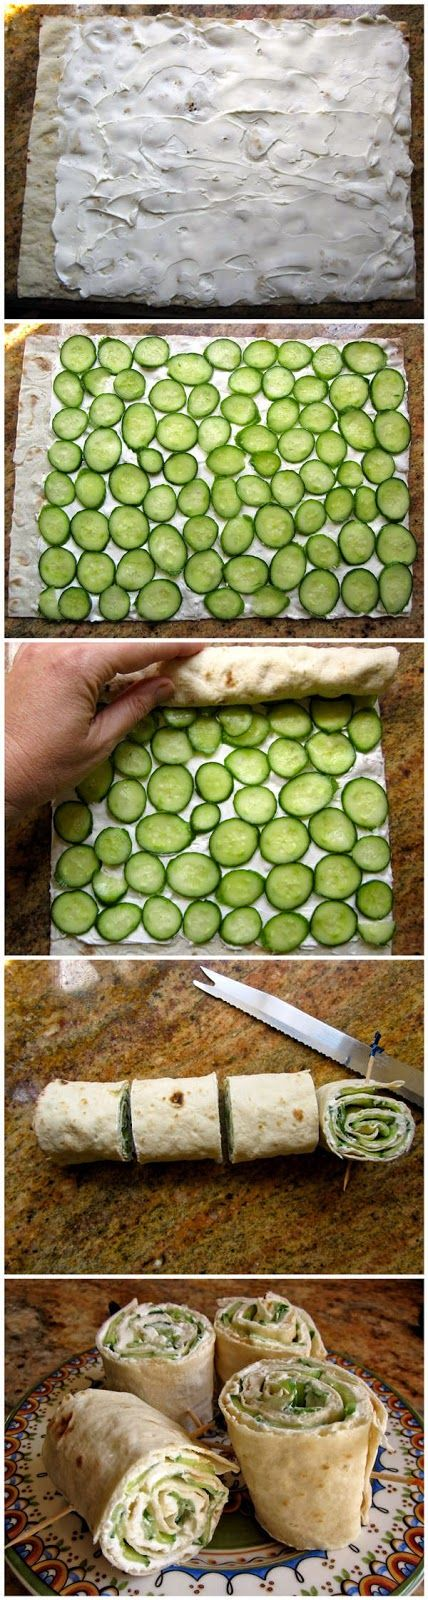 Cucumber and Cream Cheese Sandwich Rolls_amodifier